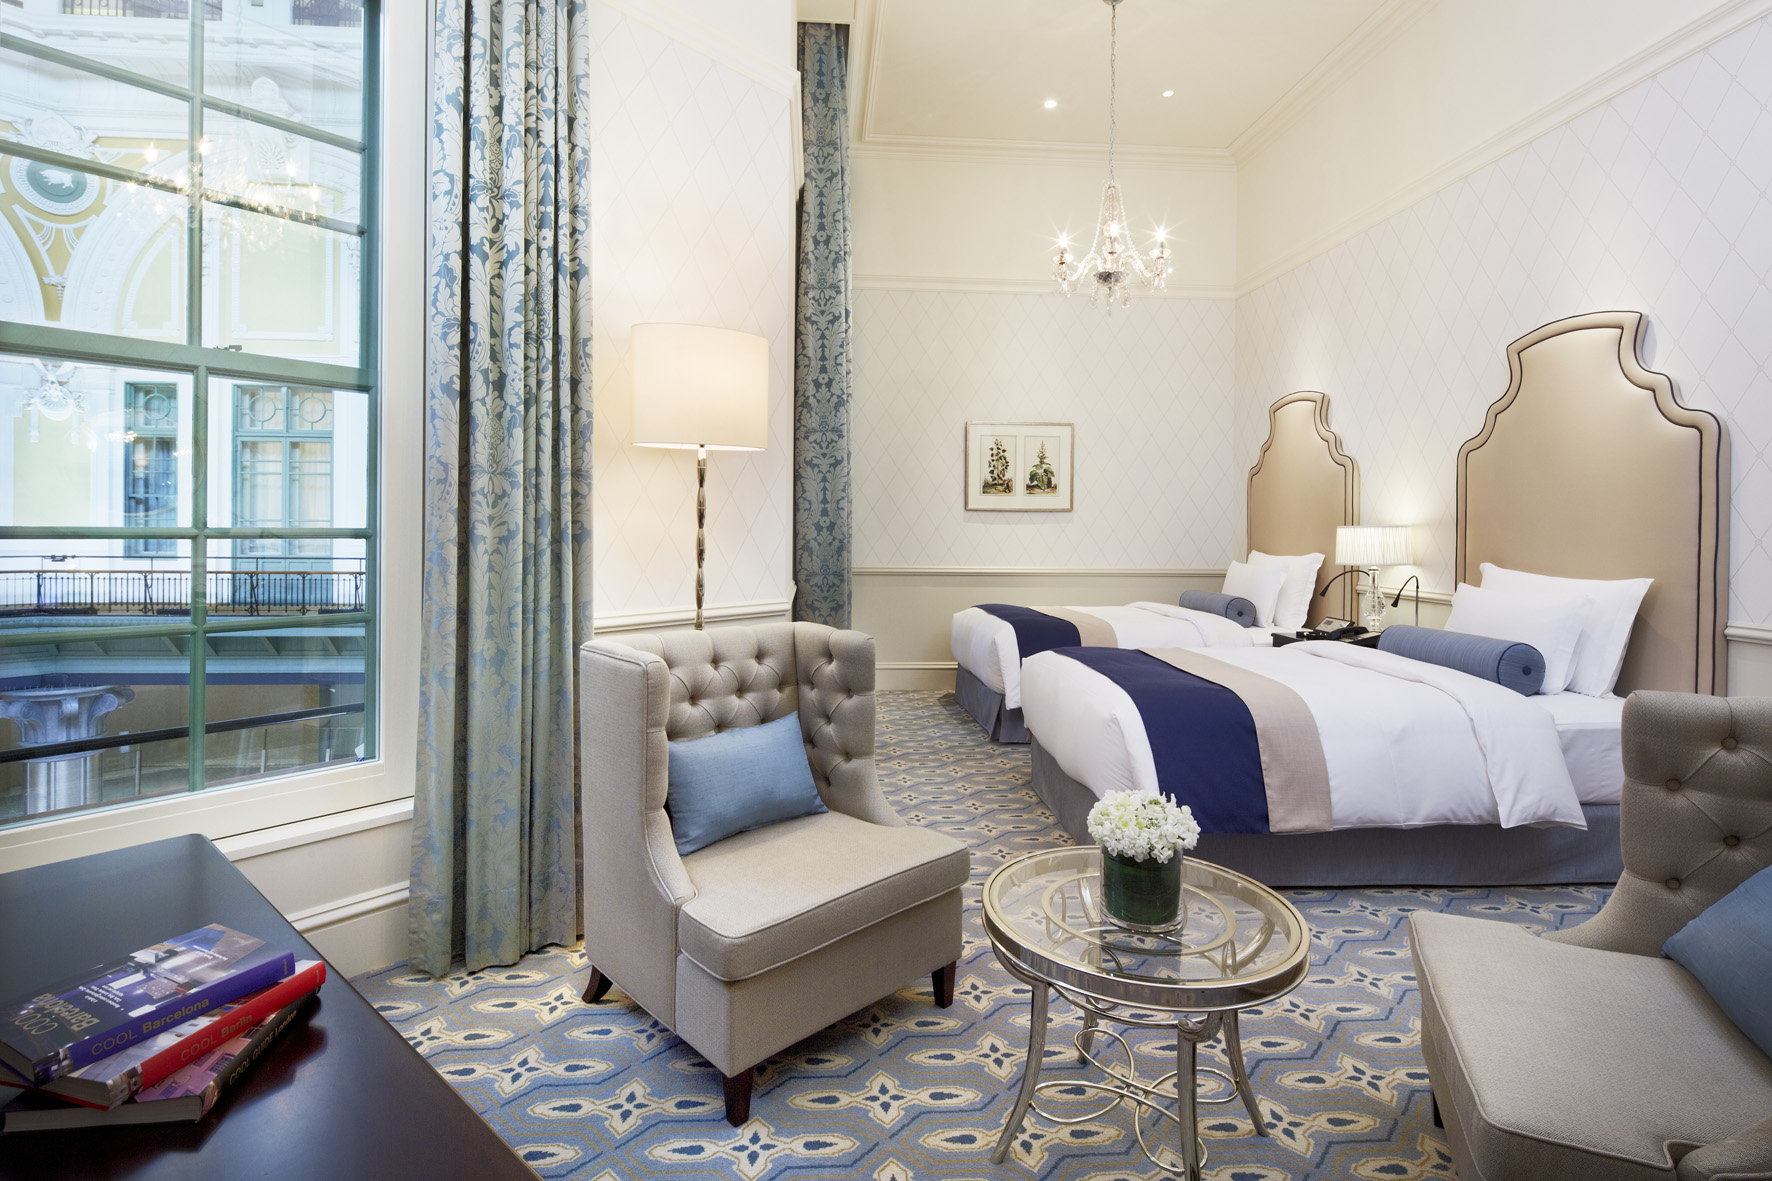 7 luxury hotels that you have to visit station hotel luxury hotels Design Lovers: 7 luxury hotels that you have to visit 7 luxury hotels that you have to visit station hotel